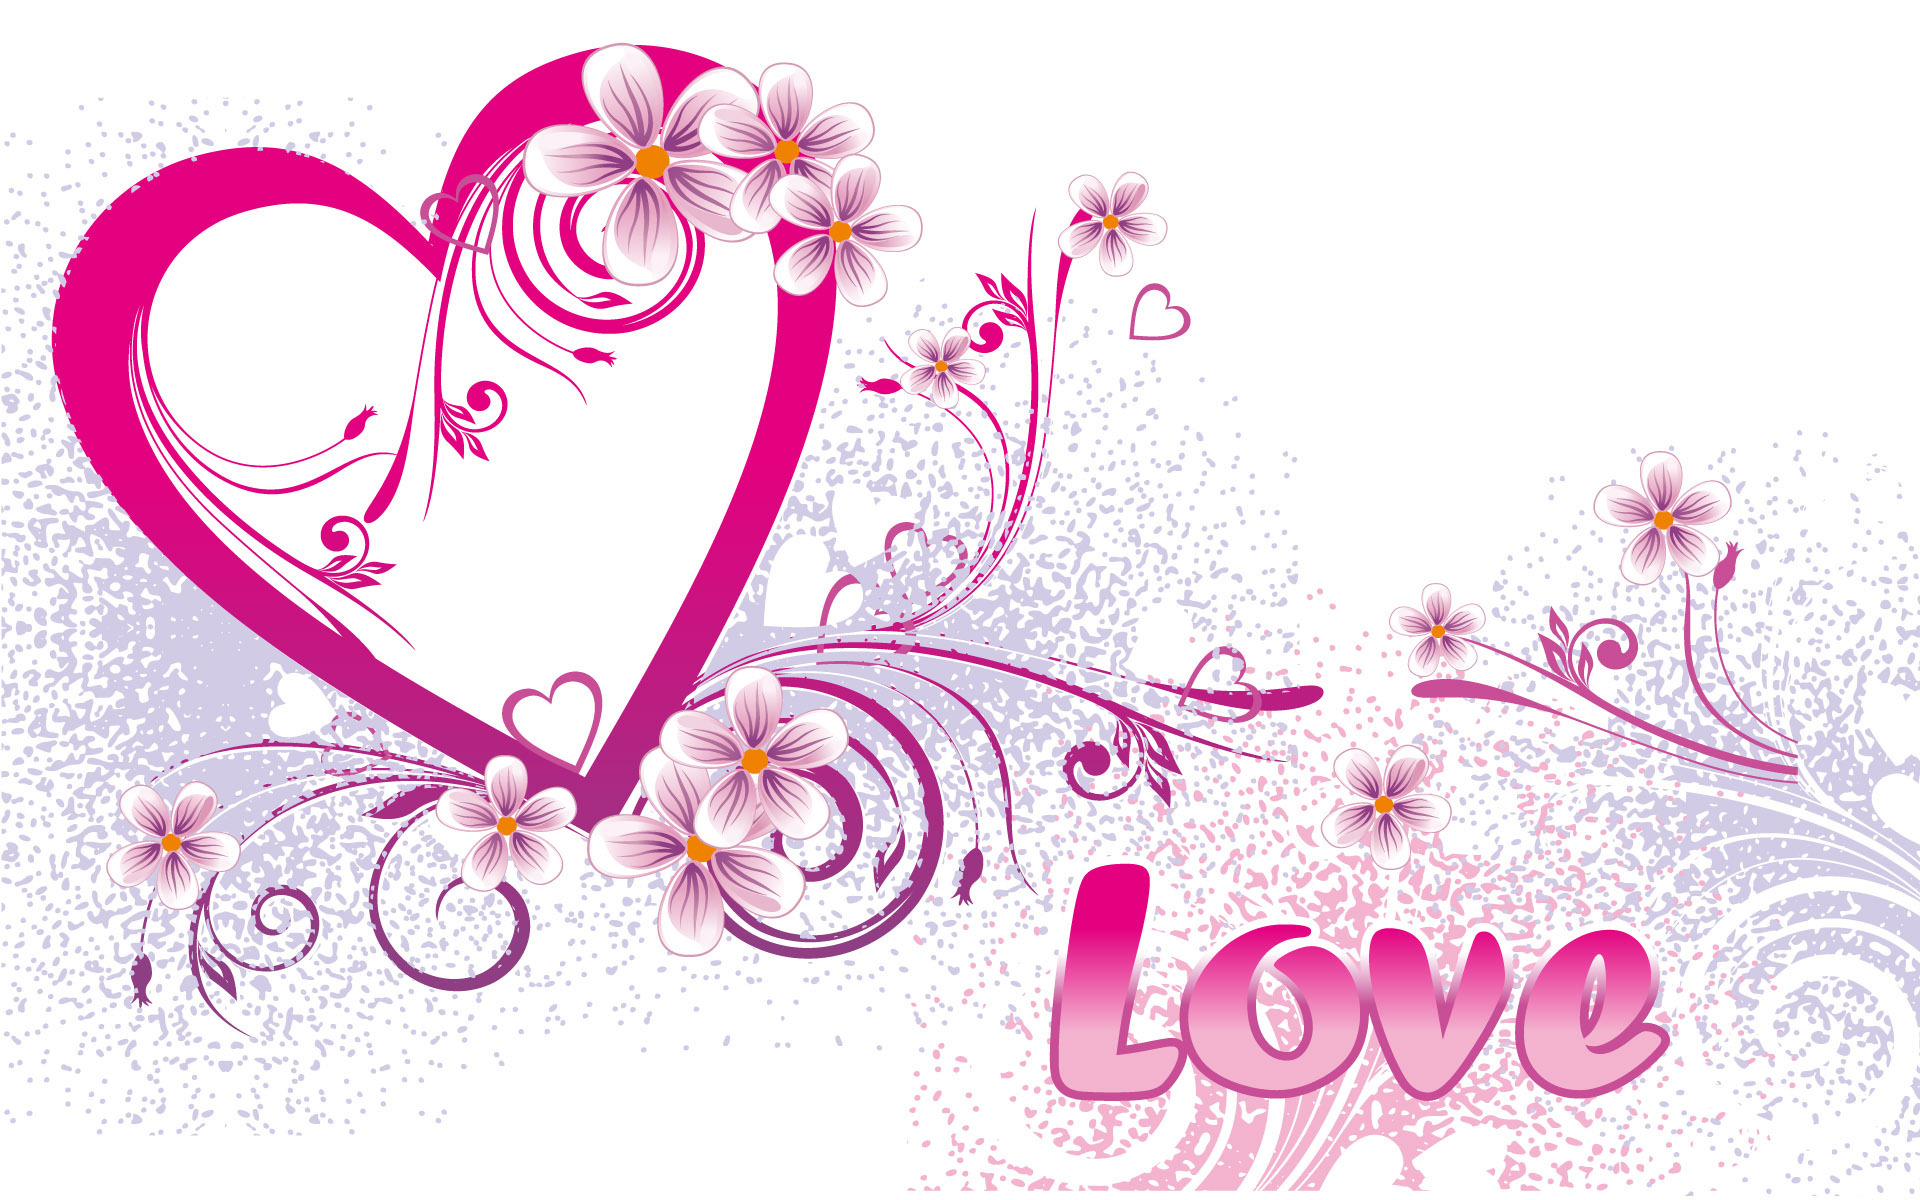 Love wallpaper   Love Wallpaper 4187632 1920x1200